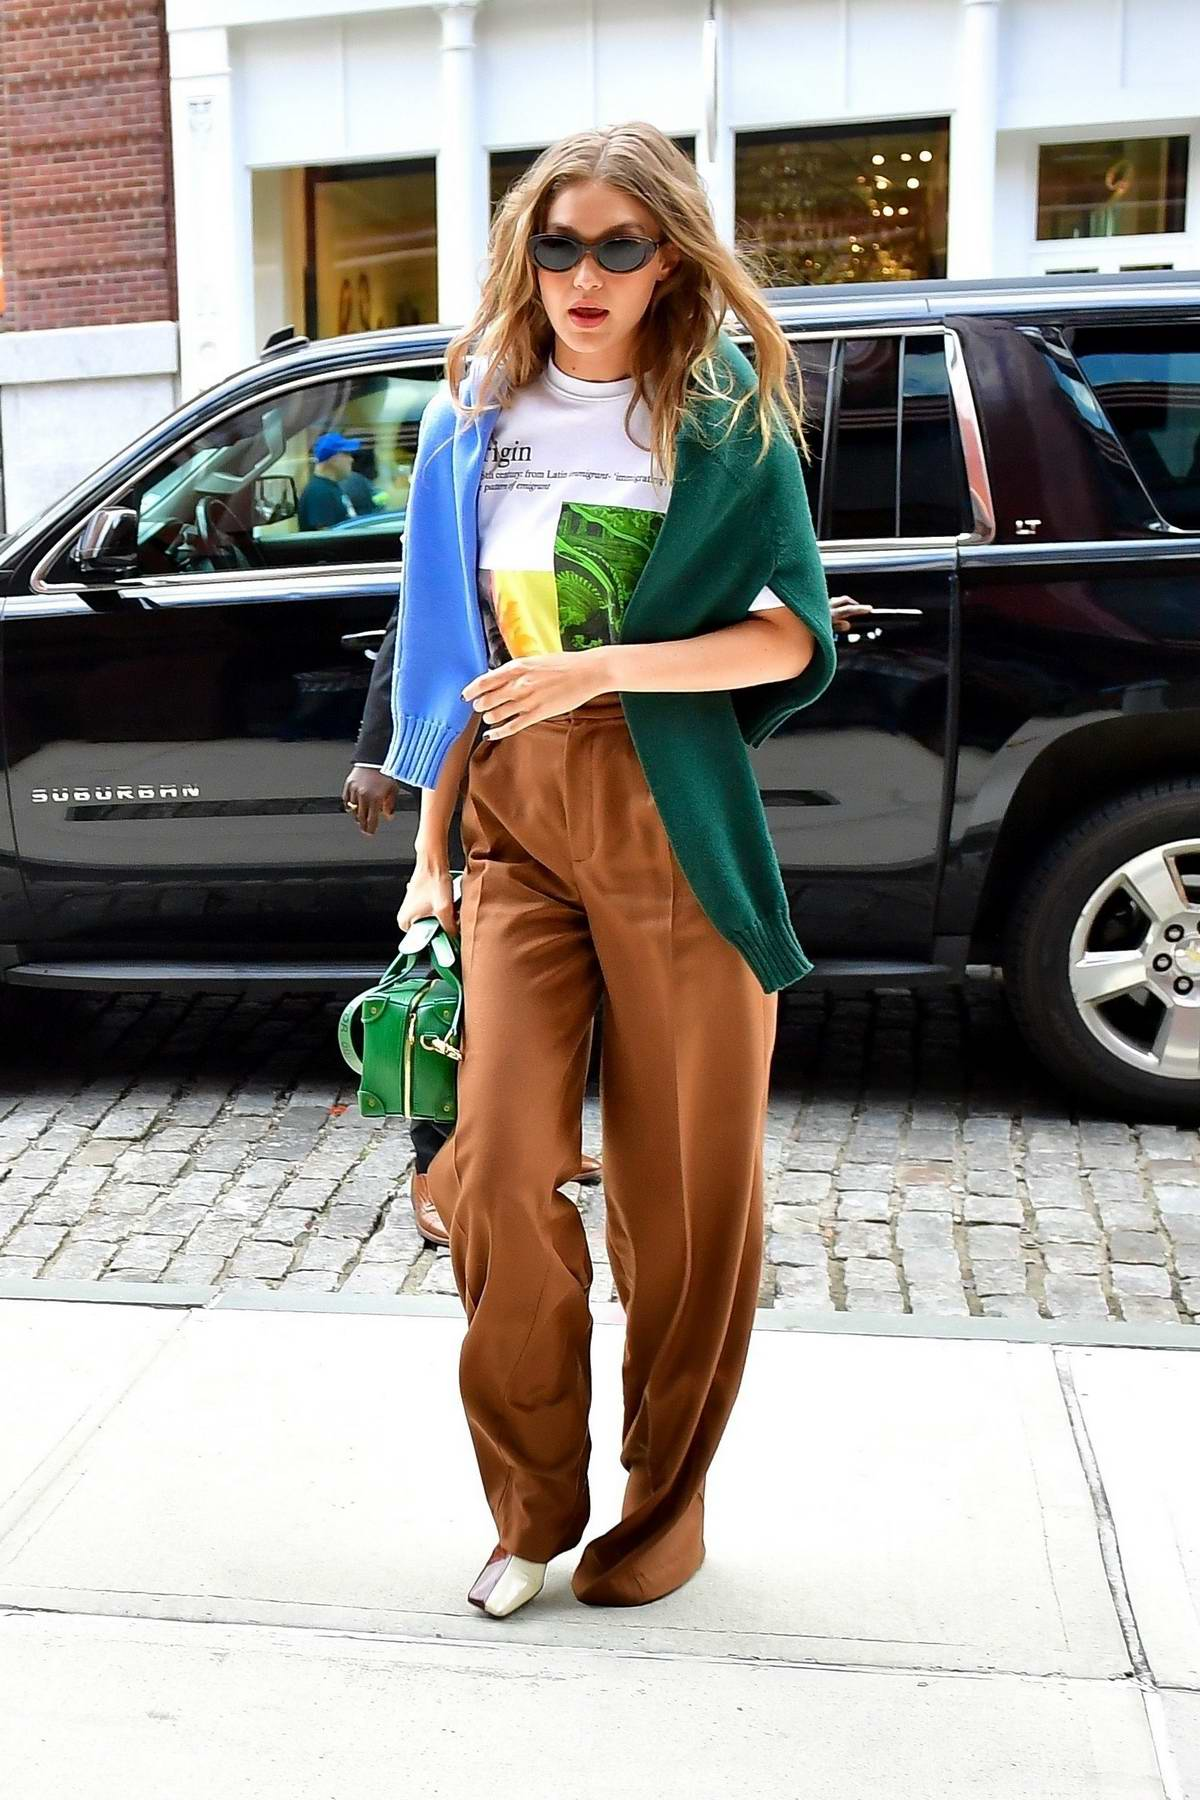 Gigi Hadid heads out for lunch in a color-blocked outfit in New York City